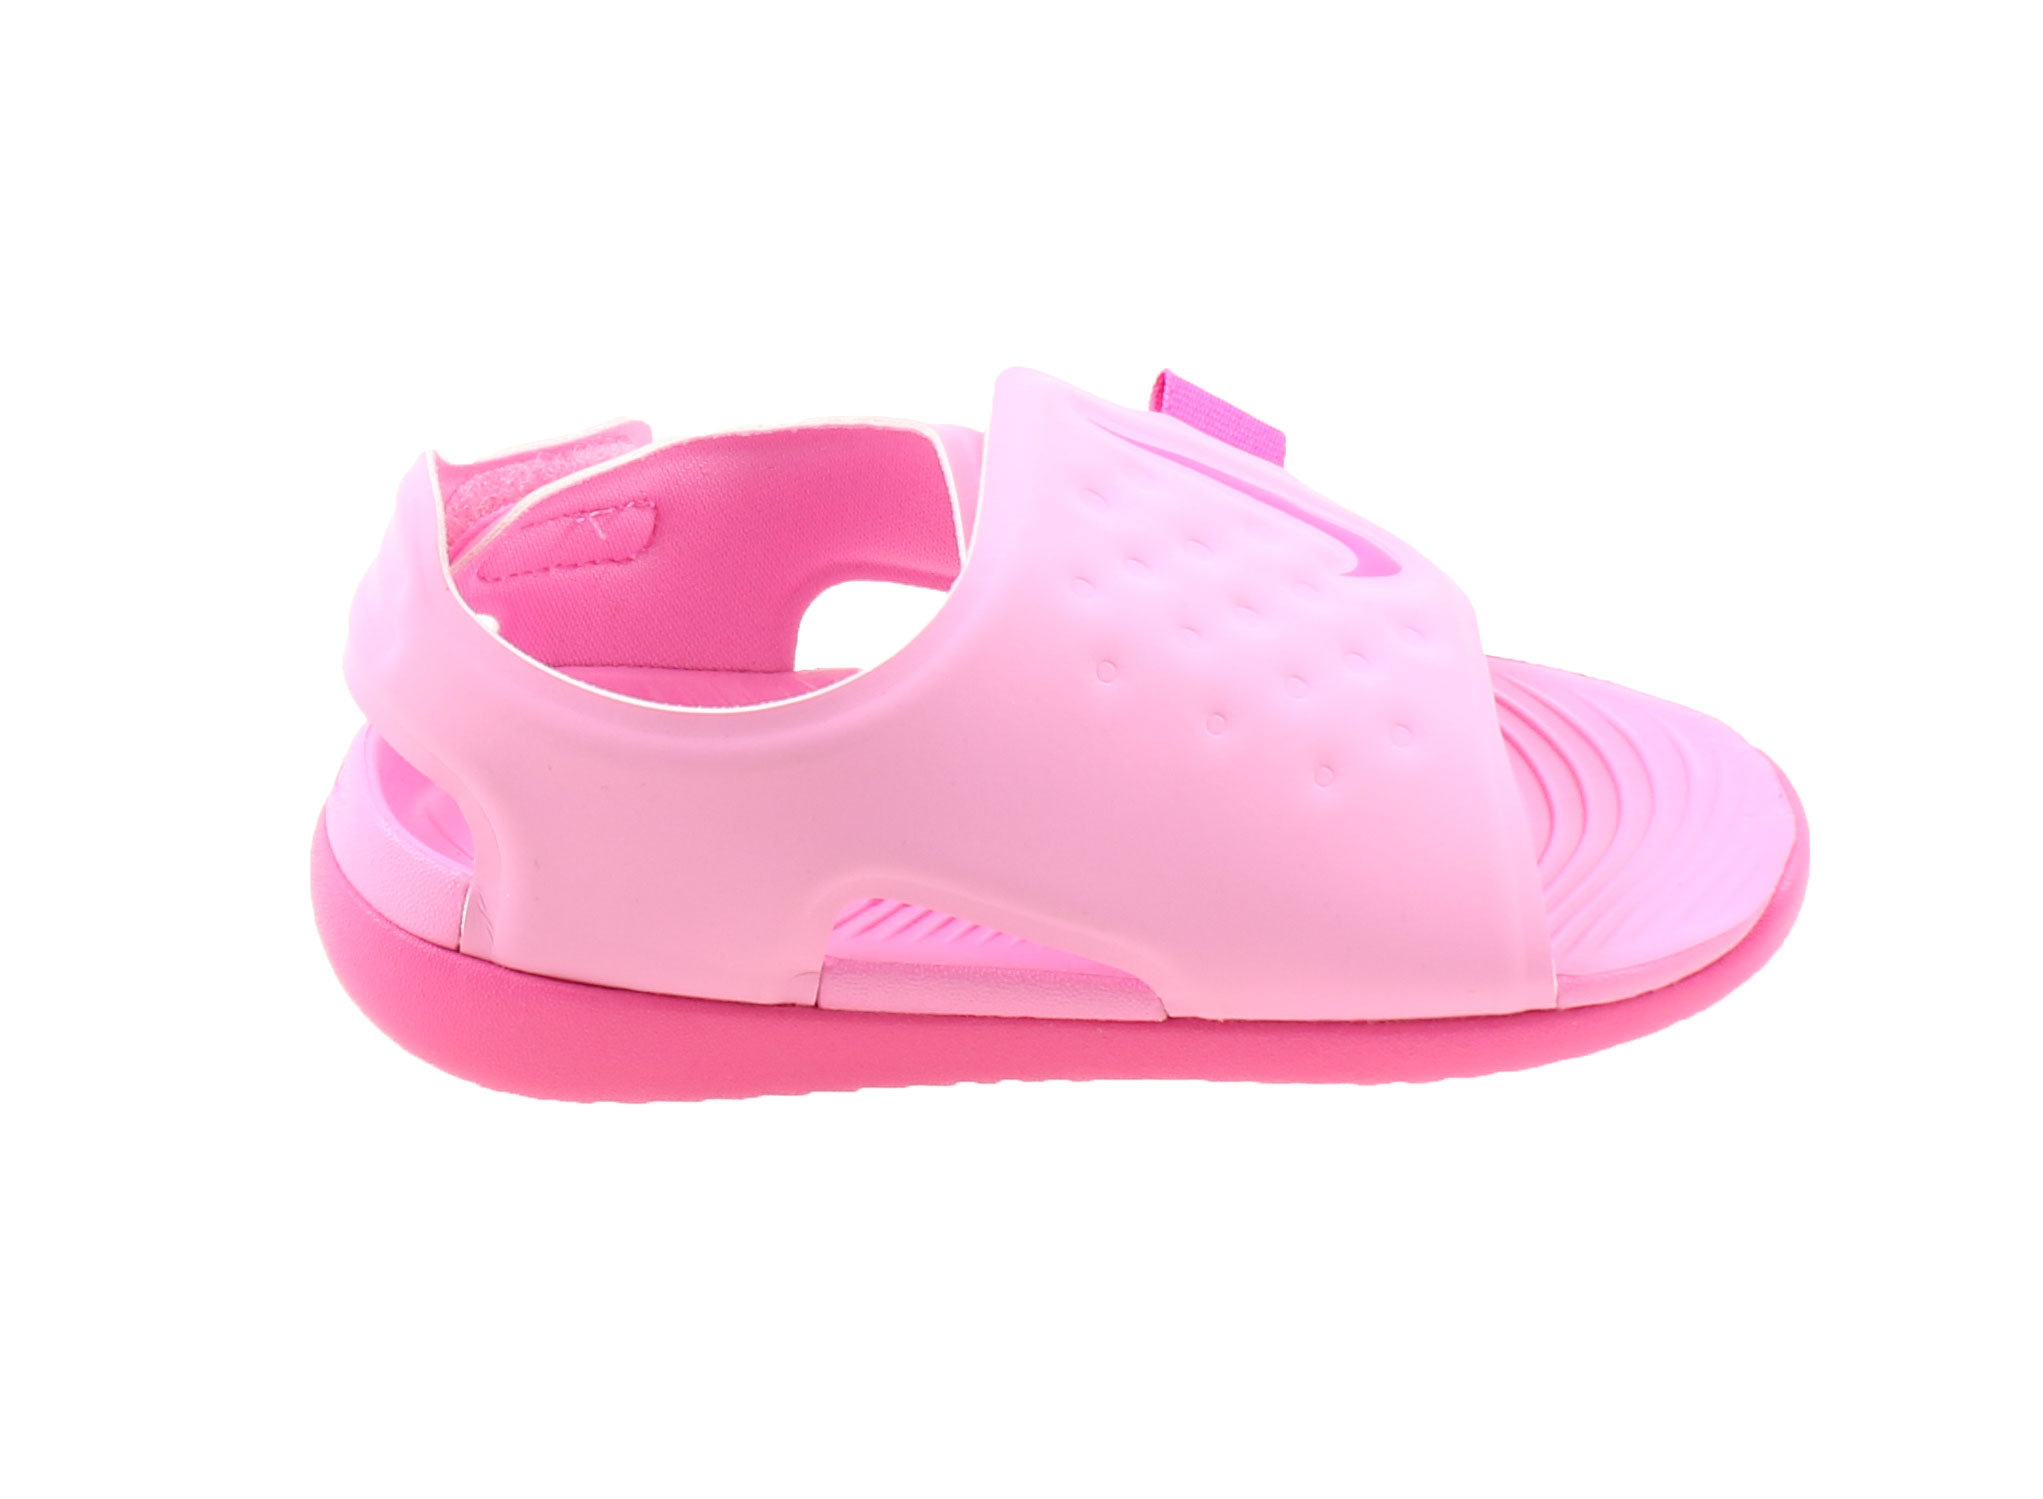 0c144fb187f Nike Sunray Adjust 5 Peuter Sandalen. AJ9077 601 Psychic Pink Laser  Fuchsia. Product afbeelding Product afbeelding ...